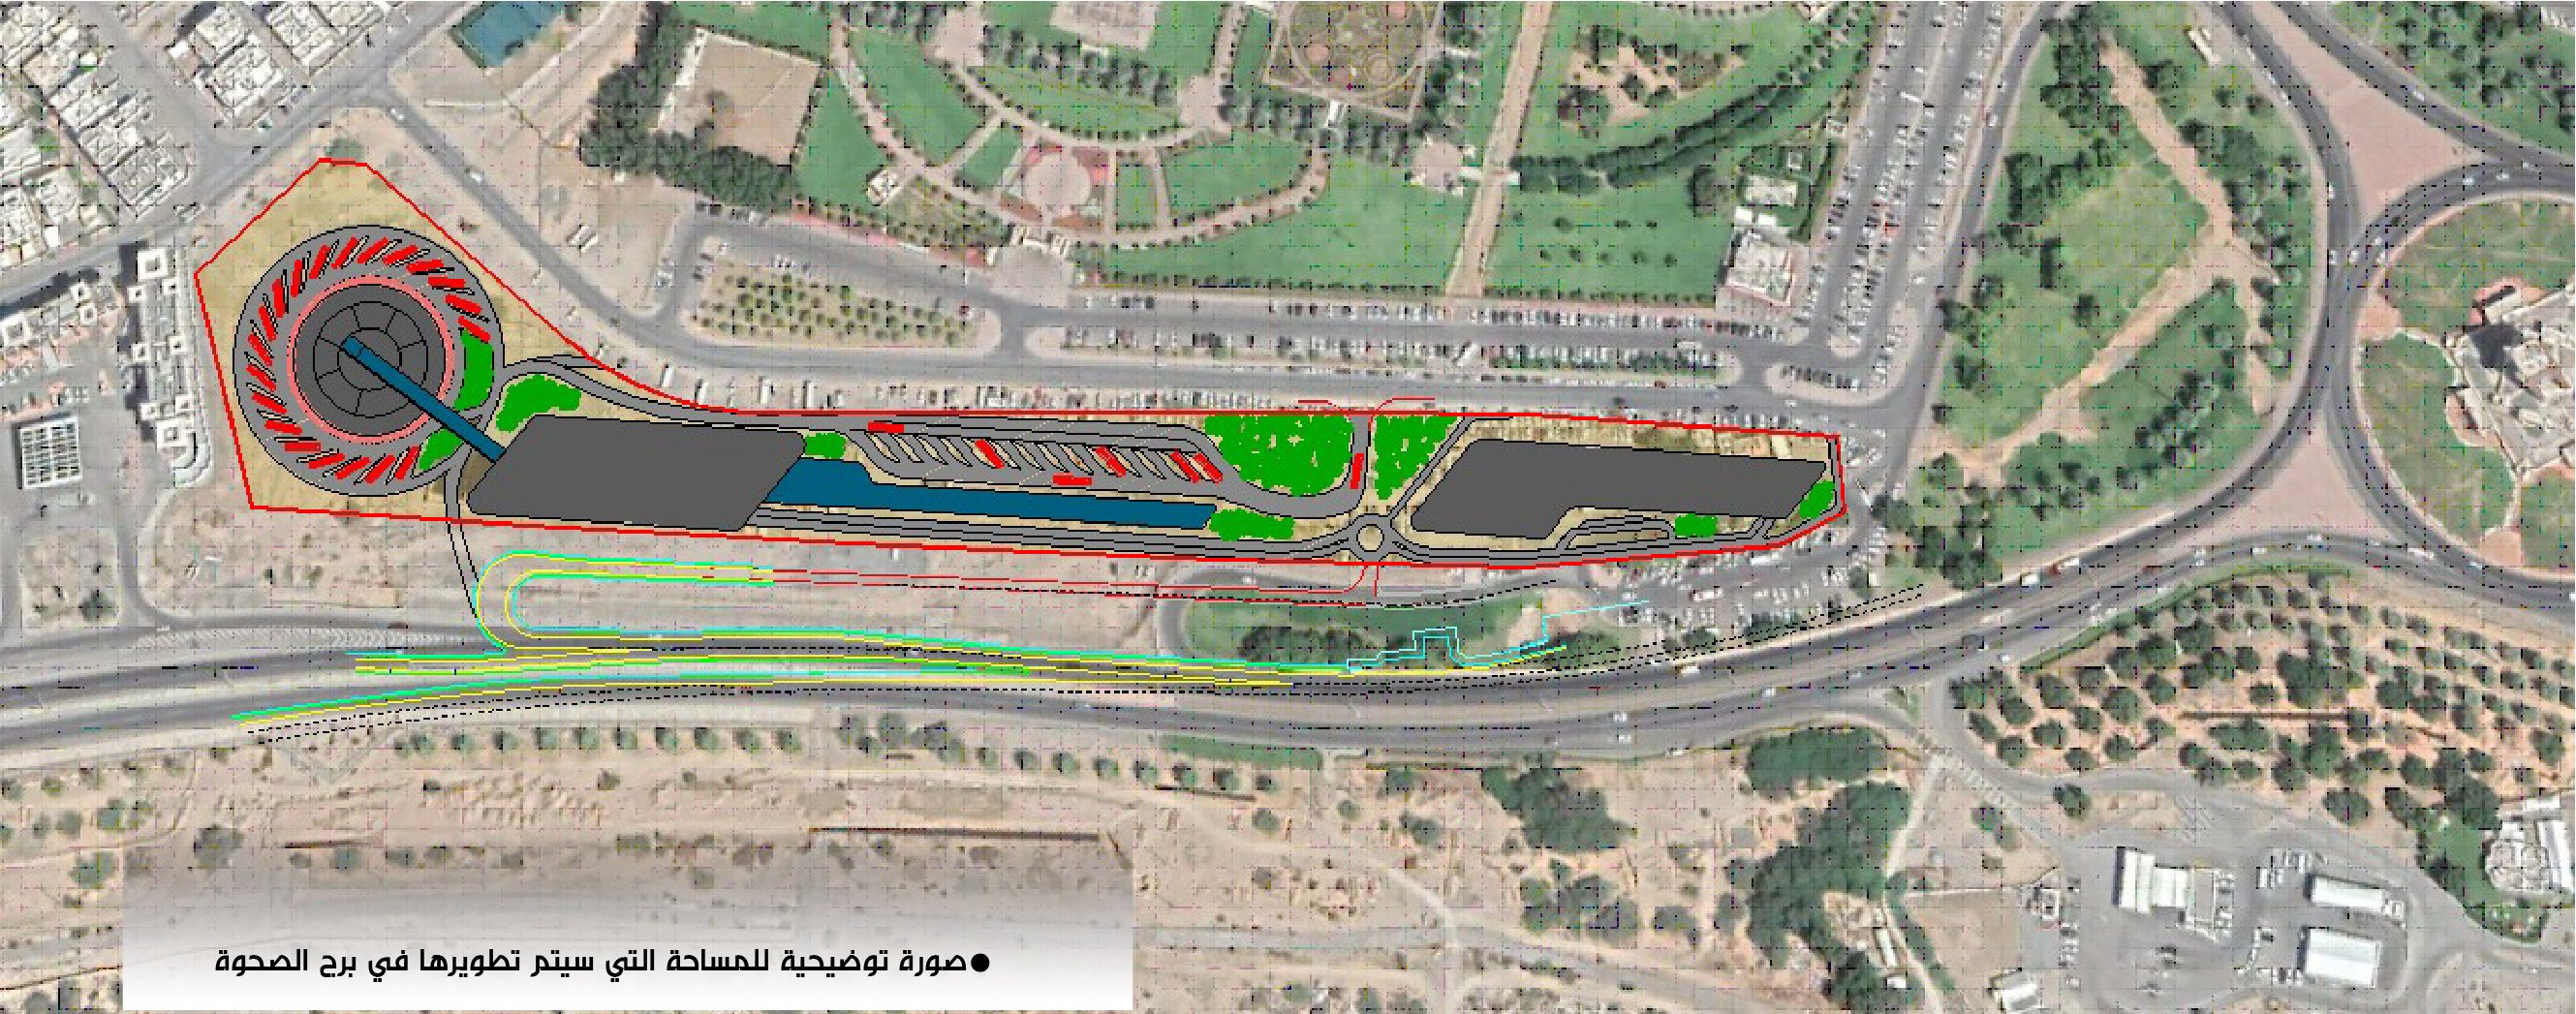 Public transport station coming to this area in Muscat